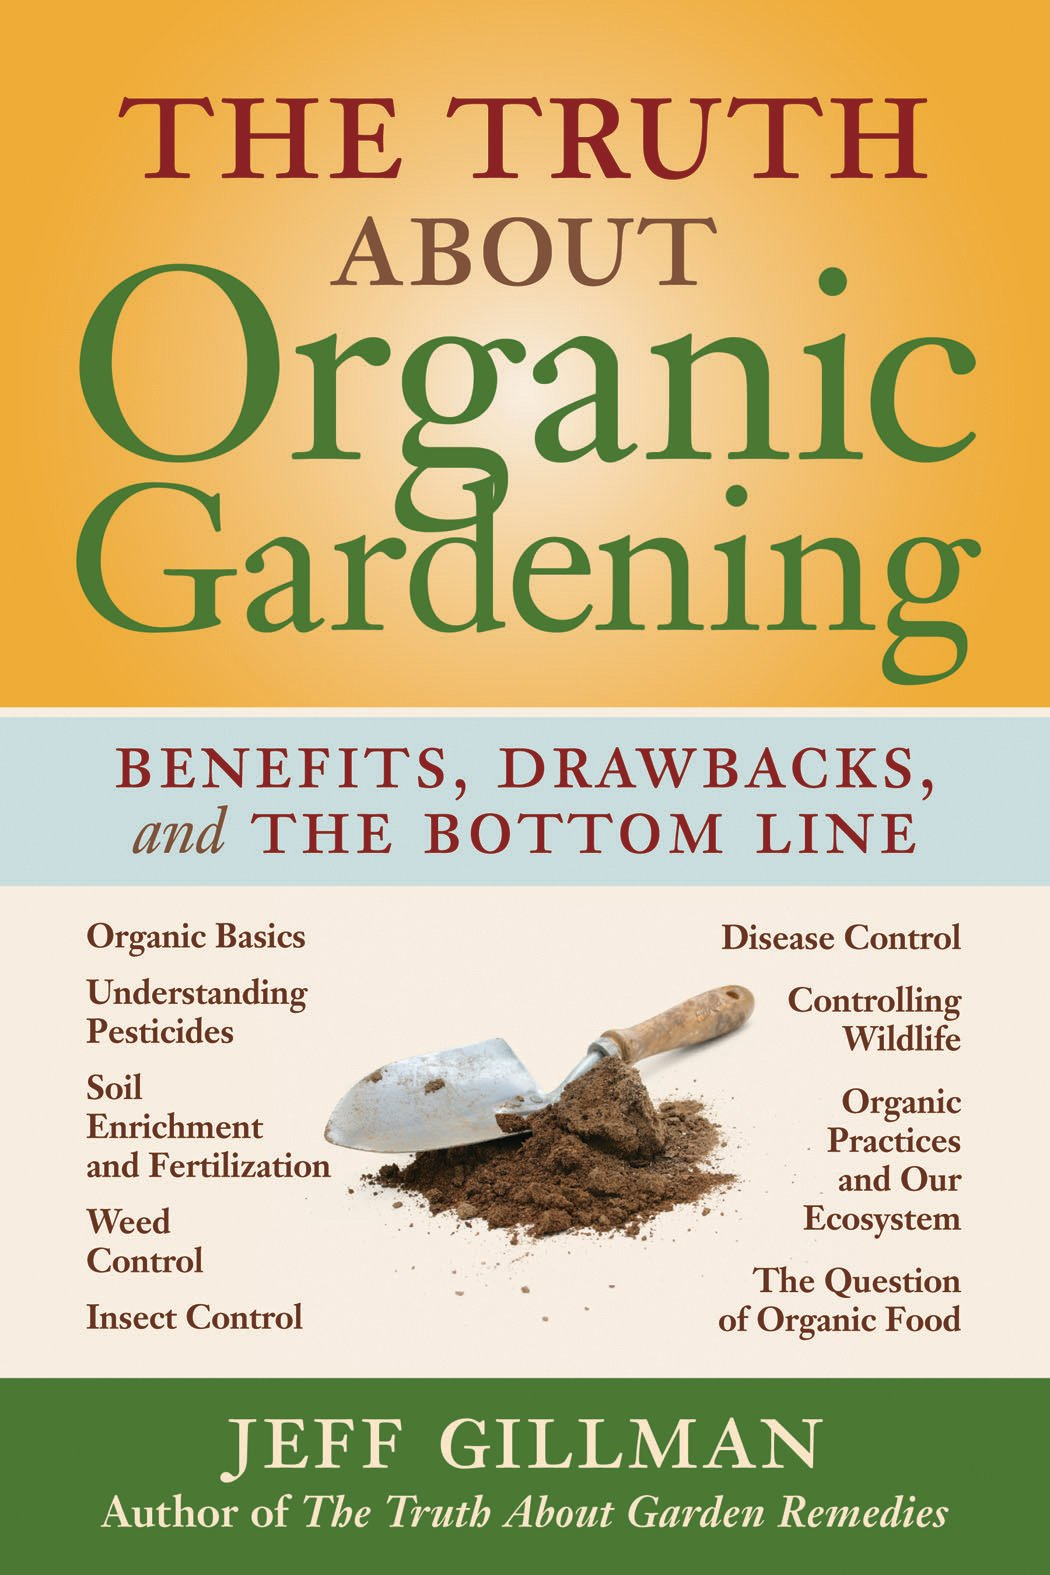 How <span class='ent _Organic_Gardening'><span class='ent _Organic_Gardening'><span class='ent _Organic_Gardening'><span class='ent _Organic_Gardening'><span class='ent _Organic_Gardening'><span class='ent _Organic_Gardening'><span class='ent _Organic_Gardening'><span class='ent _Organic_Gardening'><span class='ent _Organic_Gardening'><span class='ent _Organic_Gardening'><span class='ent _Organic_Gardening'><span class='ent _Organic_Gardening'><span class='ent _Organic_Gardening'><span class='ent _Organic_Gardening'><span class='ent _Organic_Gardening'><span class='ent _Organic_Gardening'><span class='ent _Organic_Gardening'><span class='ent _Organic_Gardening'>Organic Gardening</span></span></span></span></span></span></span></span></span></span></span></span></span></span></span></span></span></span> Helps the Environment